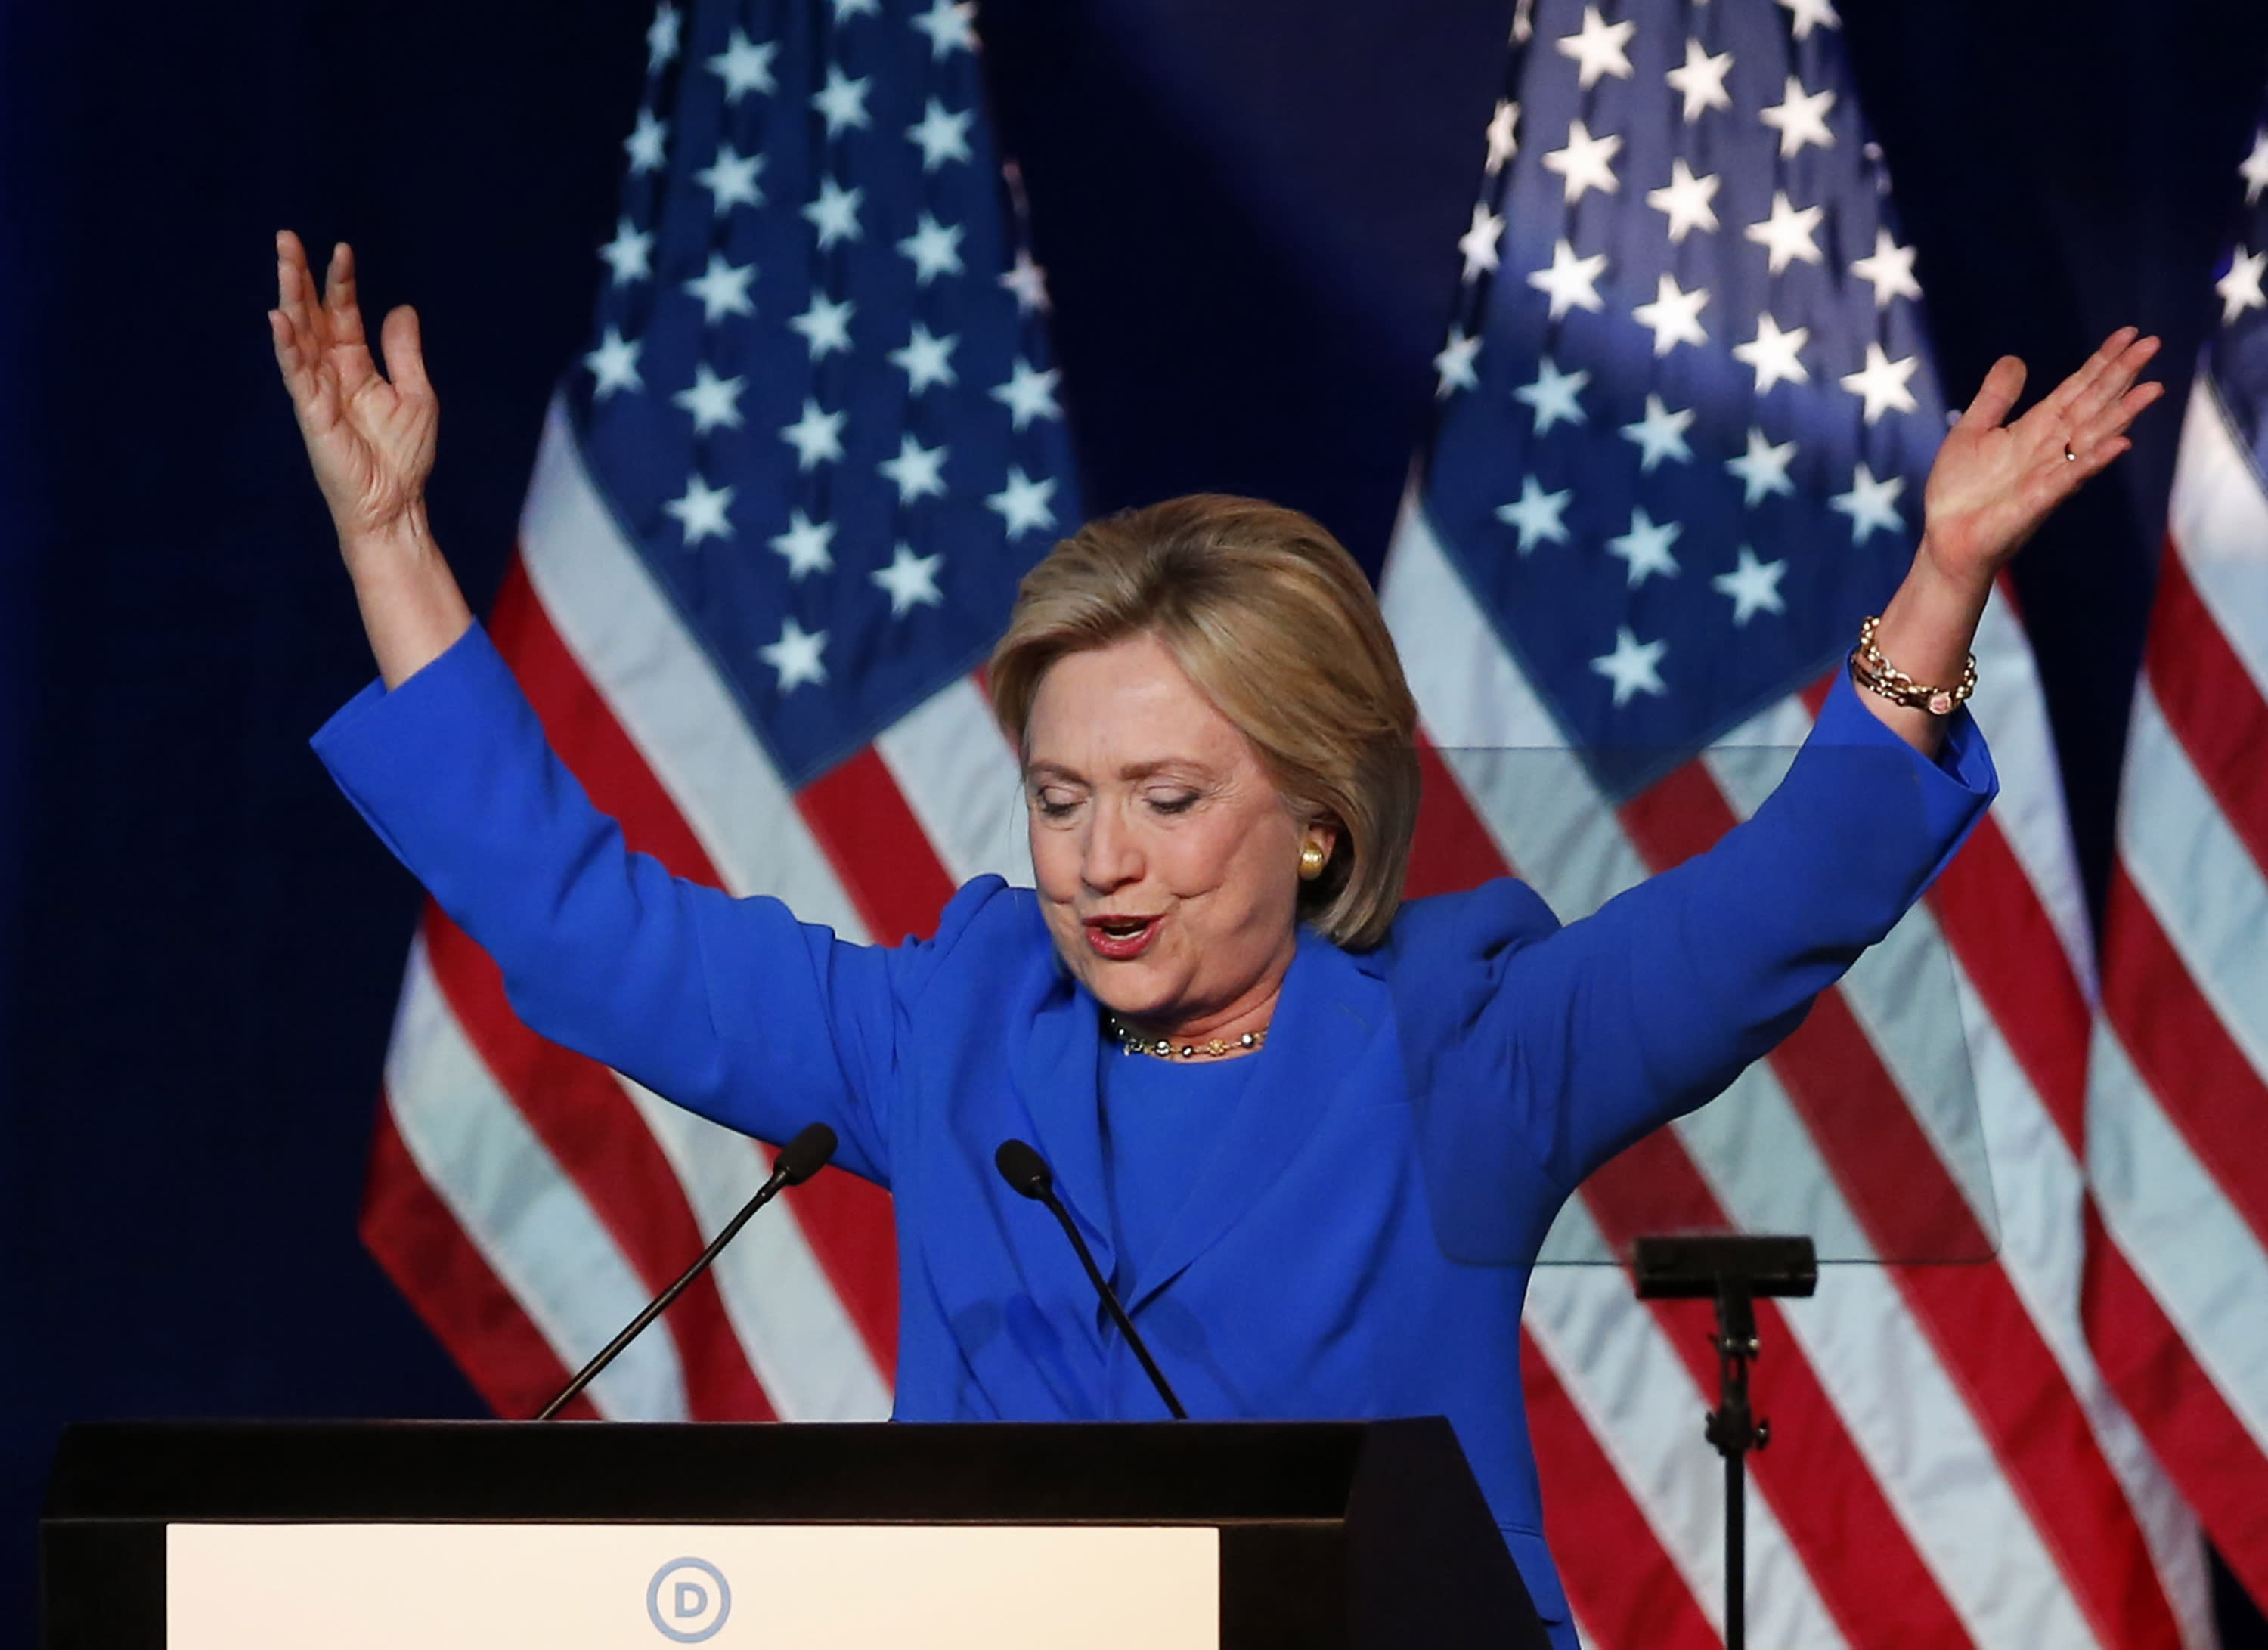 Hillary Clinton's defense of her personal email server just got a little weaker